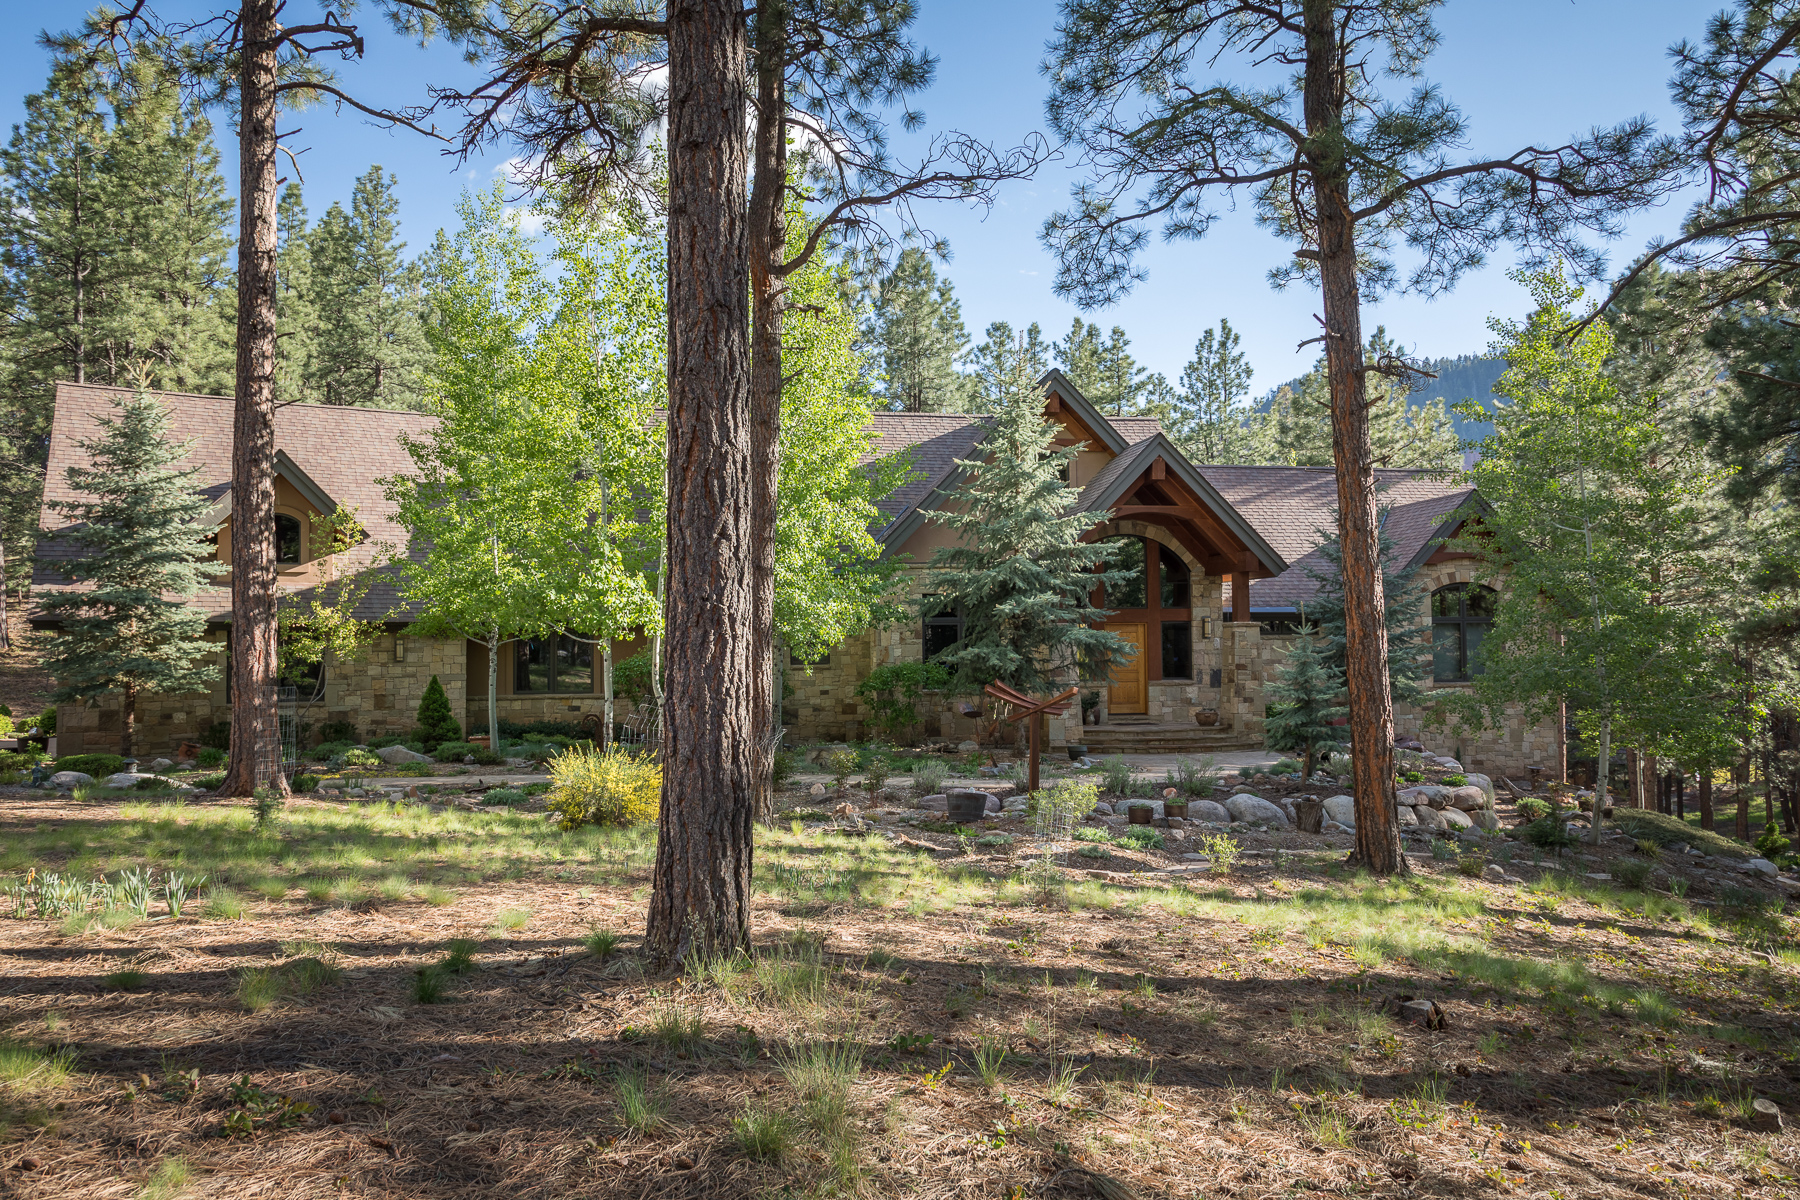 Single Family Home for Sale at 260 Alpenglow 260 Alpenglow Durango, Colorado 81301 United States